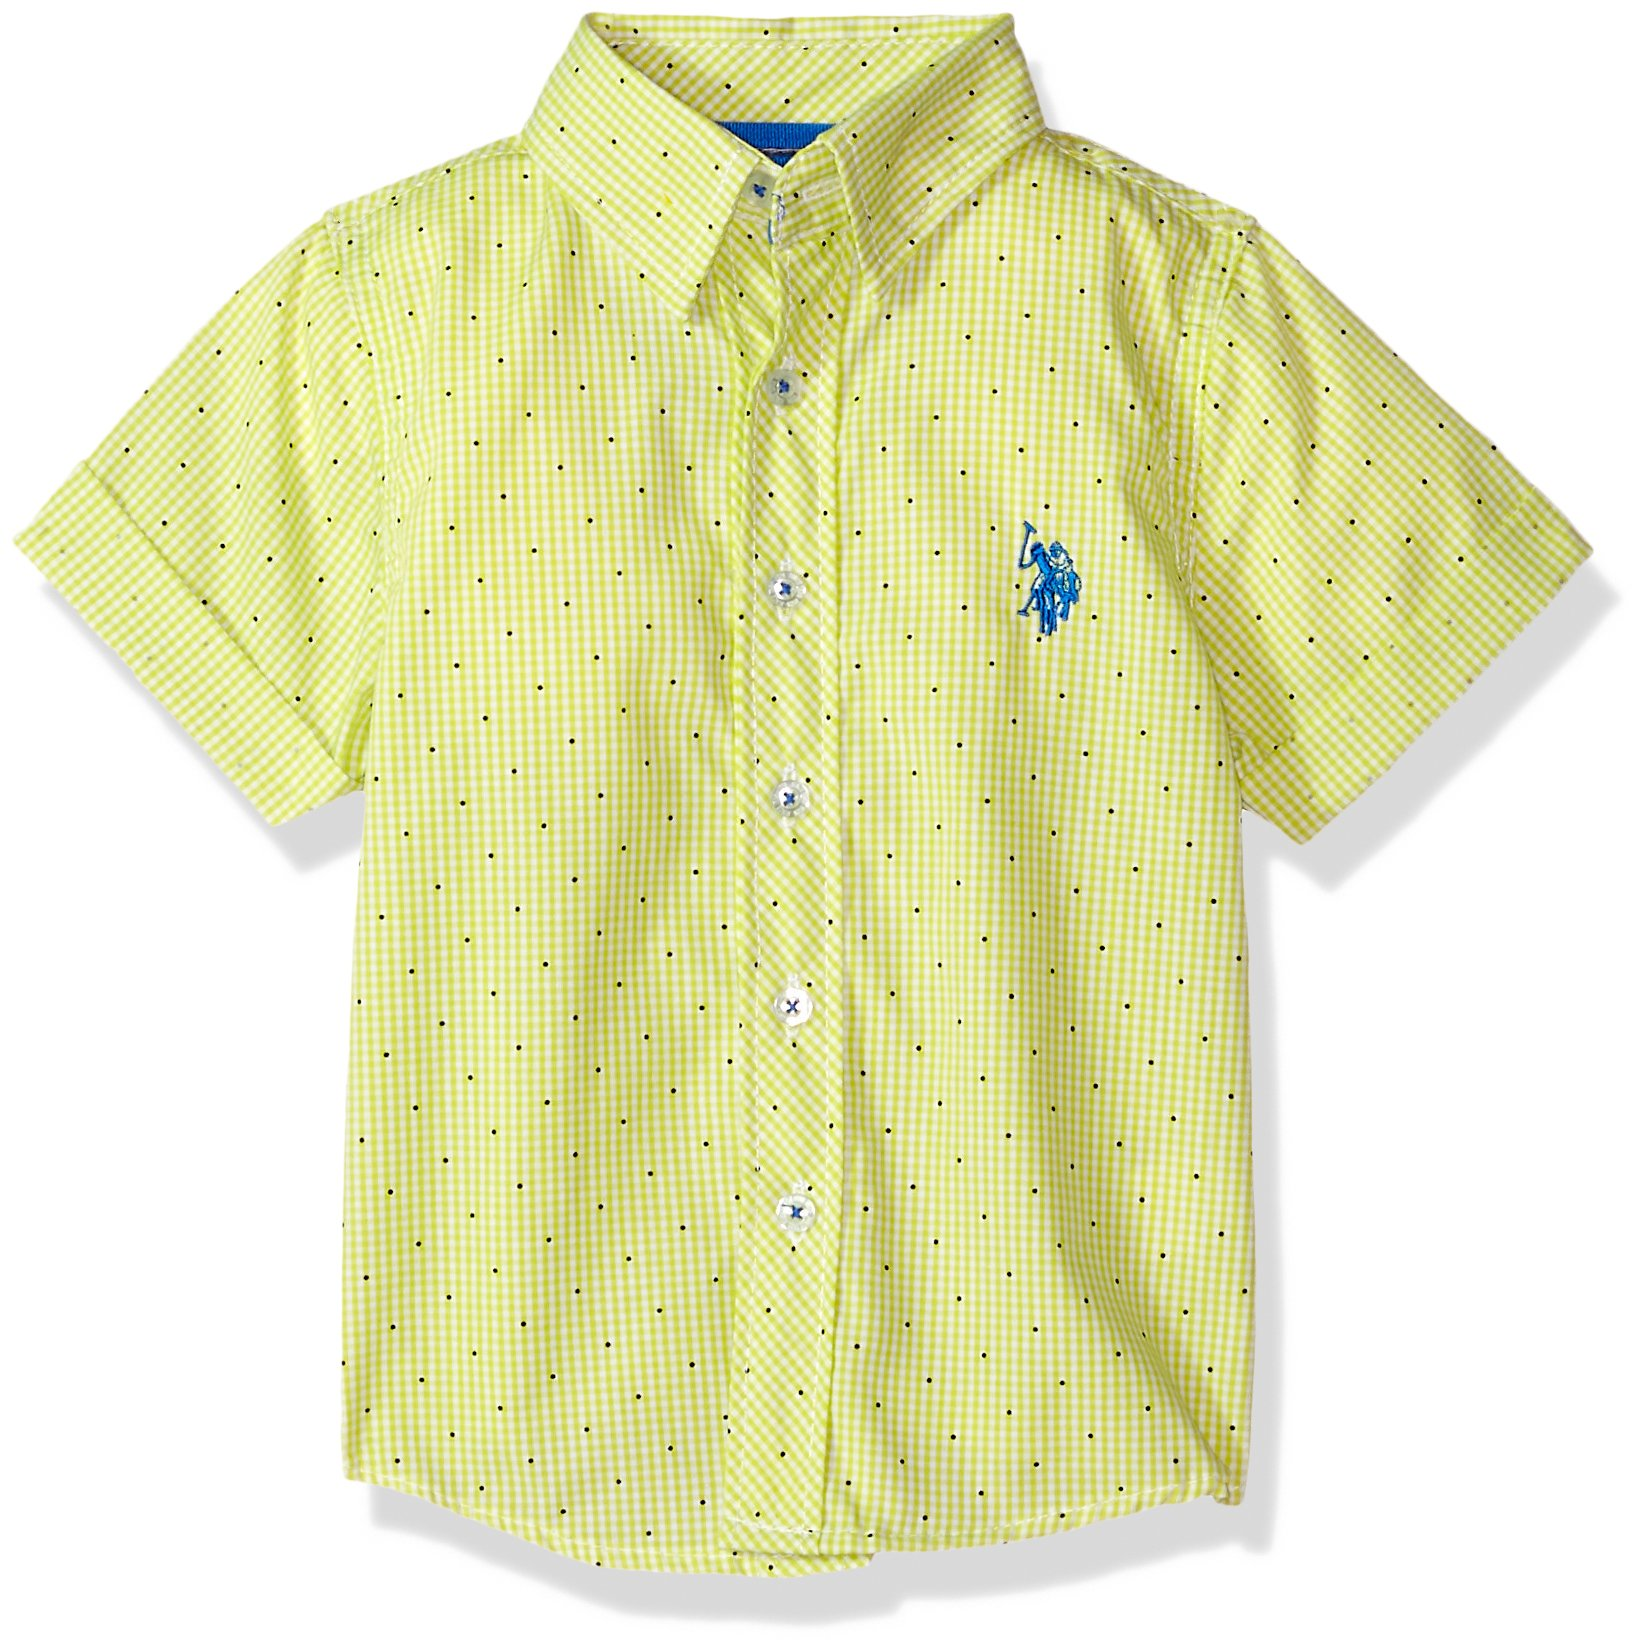 U.S. Polo Assn.. Toddler Boys' Short Sleeve Plaid Sport Shirt, Check Dots Summer Lime, 2T